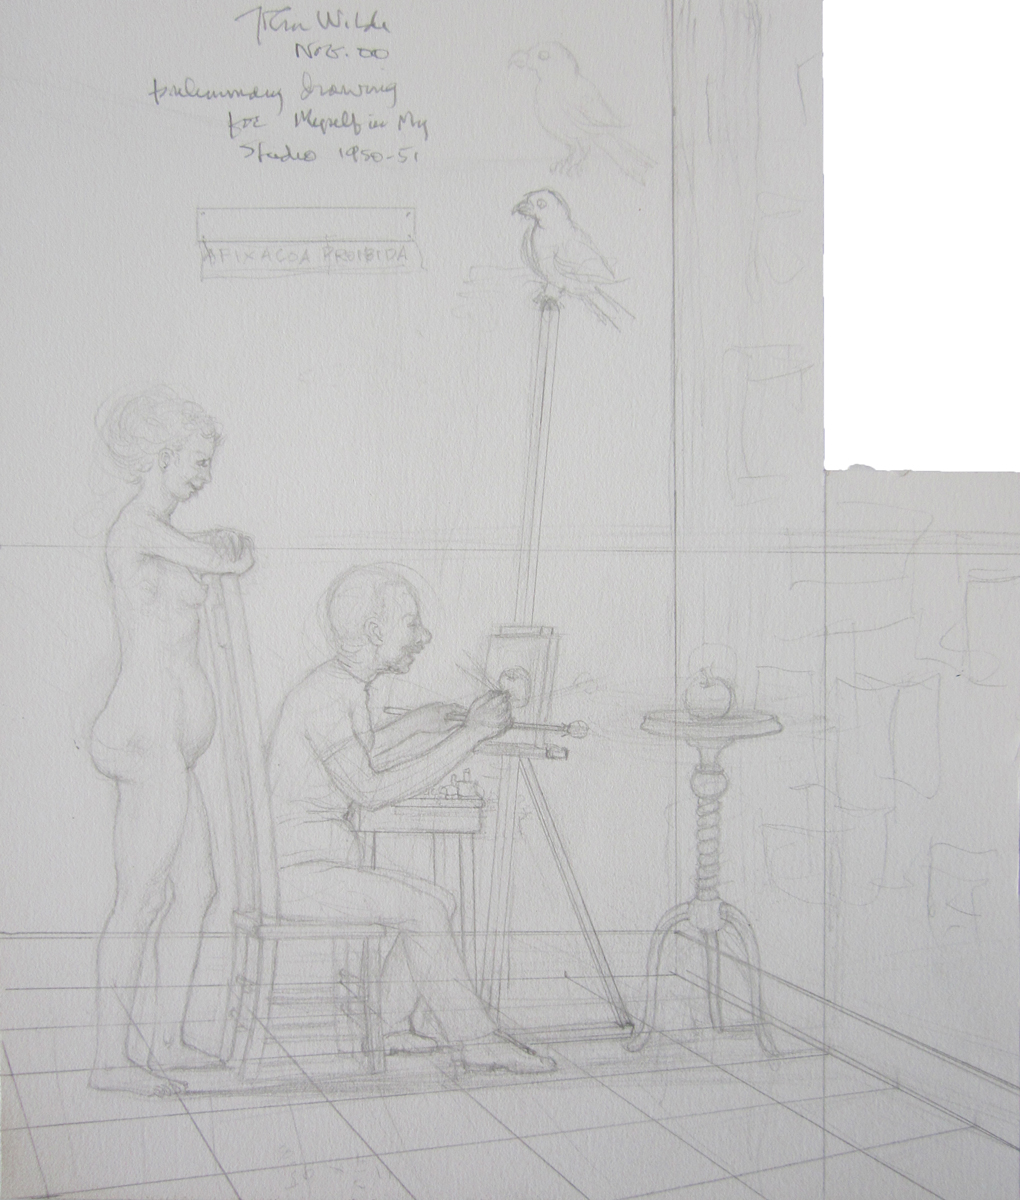 DRAWING FOR MYSELF IN MY STUDIO 1950-1951, 2000, Pencil on Illustration Board, 11 3/4 x 7 3/4""